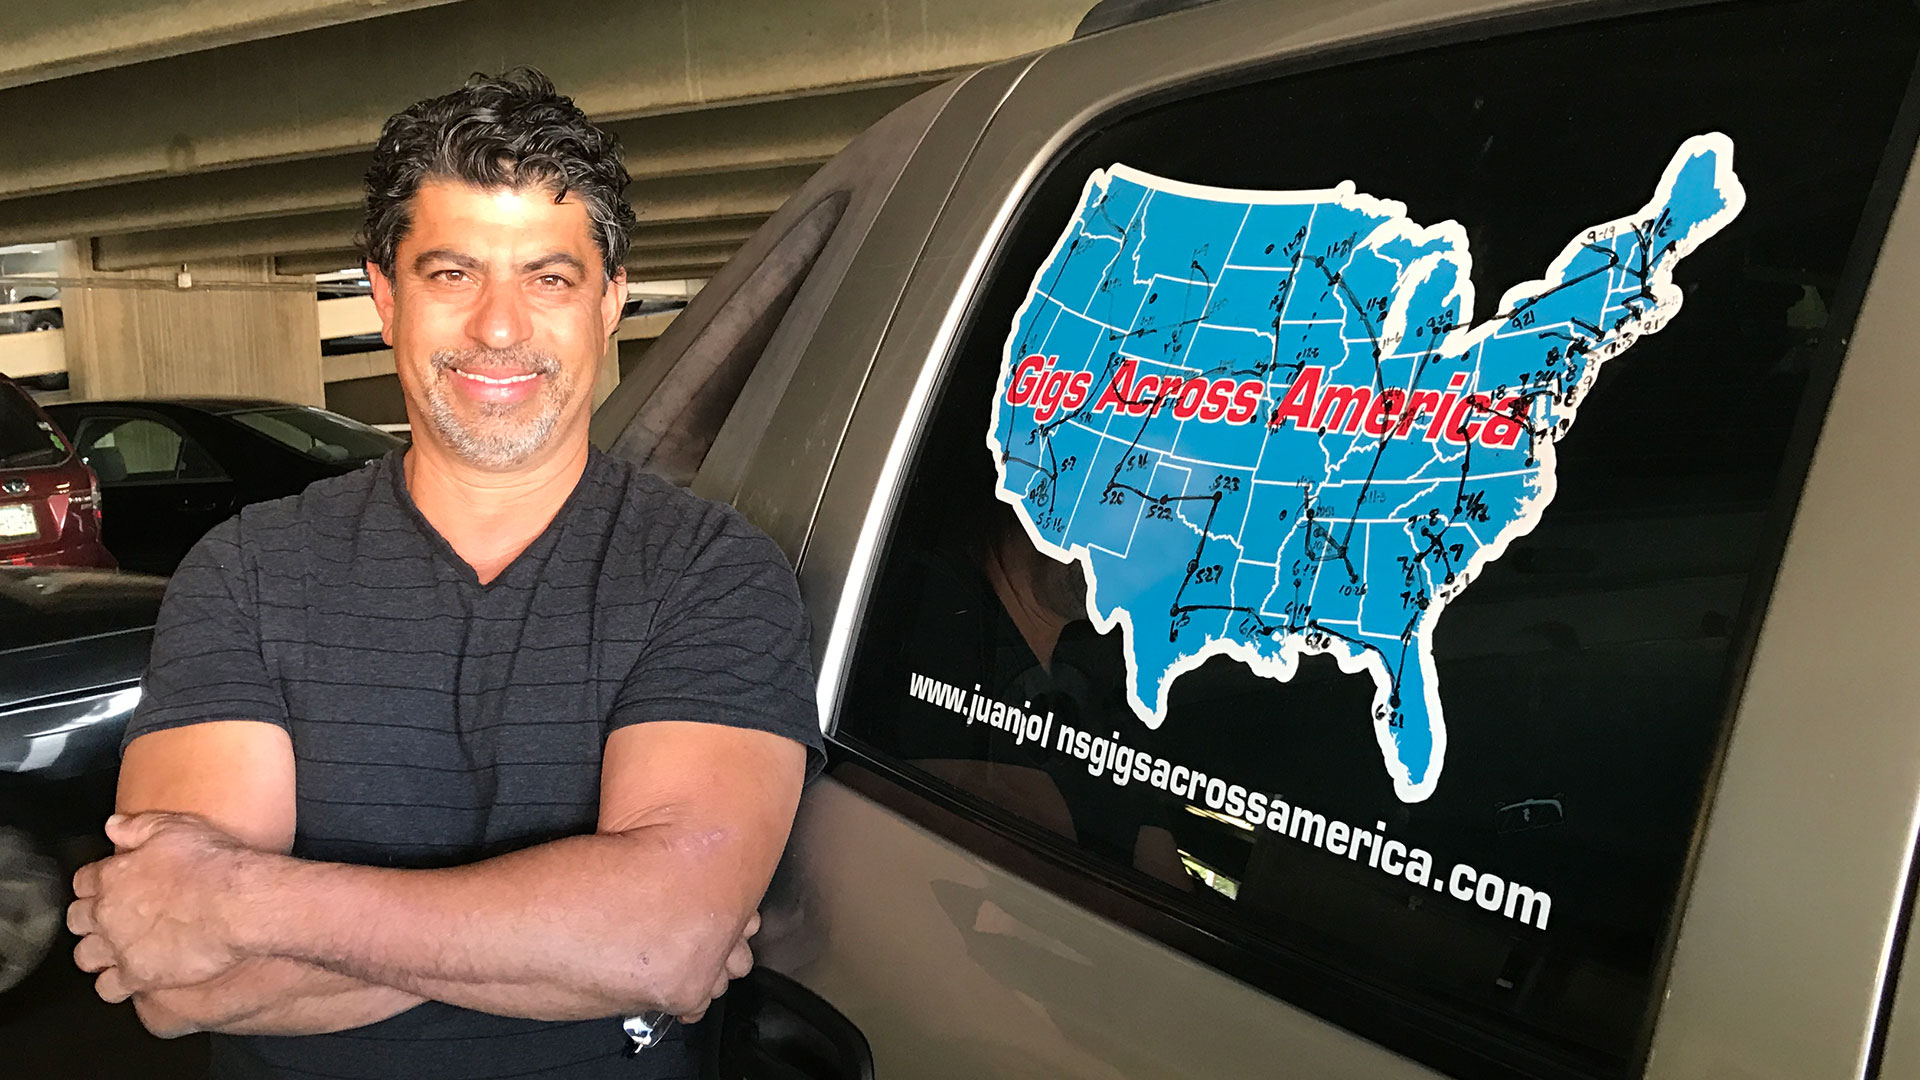 Juan Bayardo, also known as John or Juan John, completed a driving and working tour of the United States.